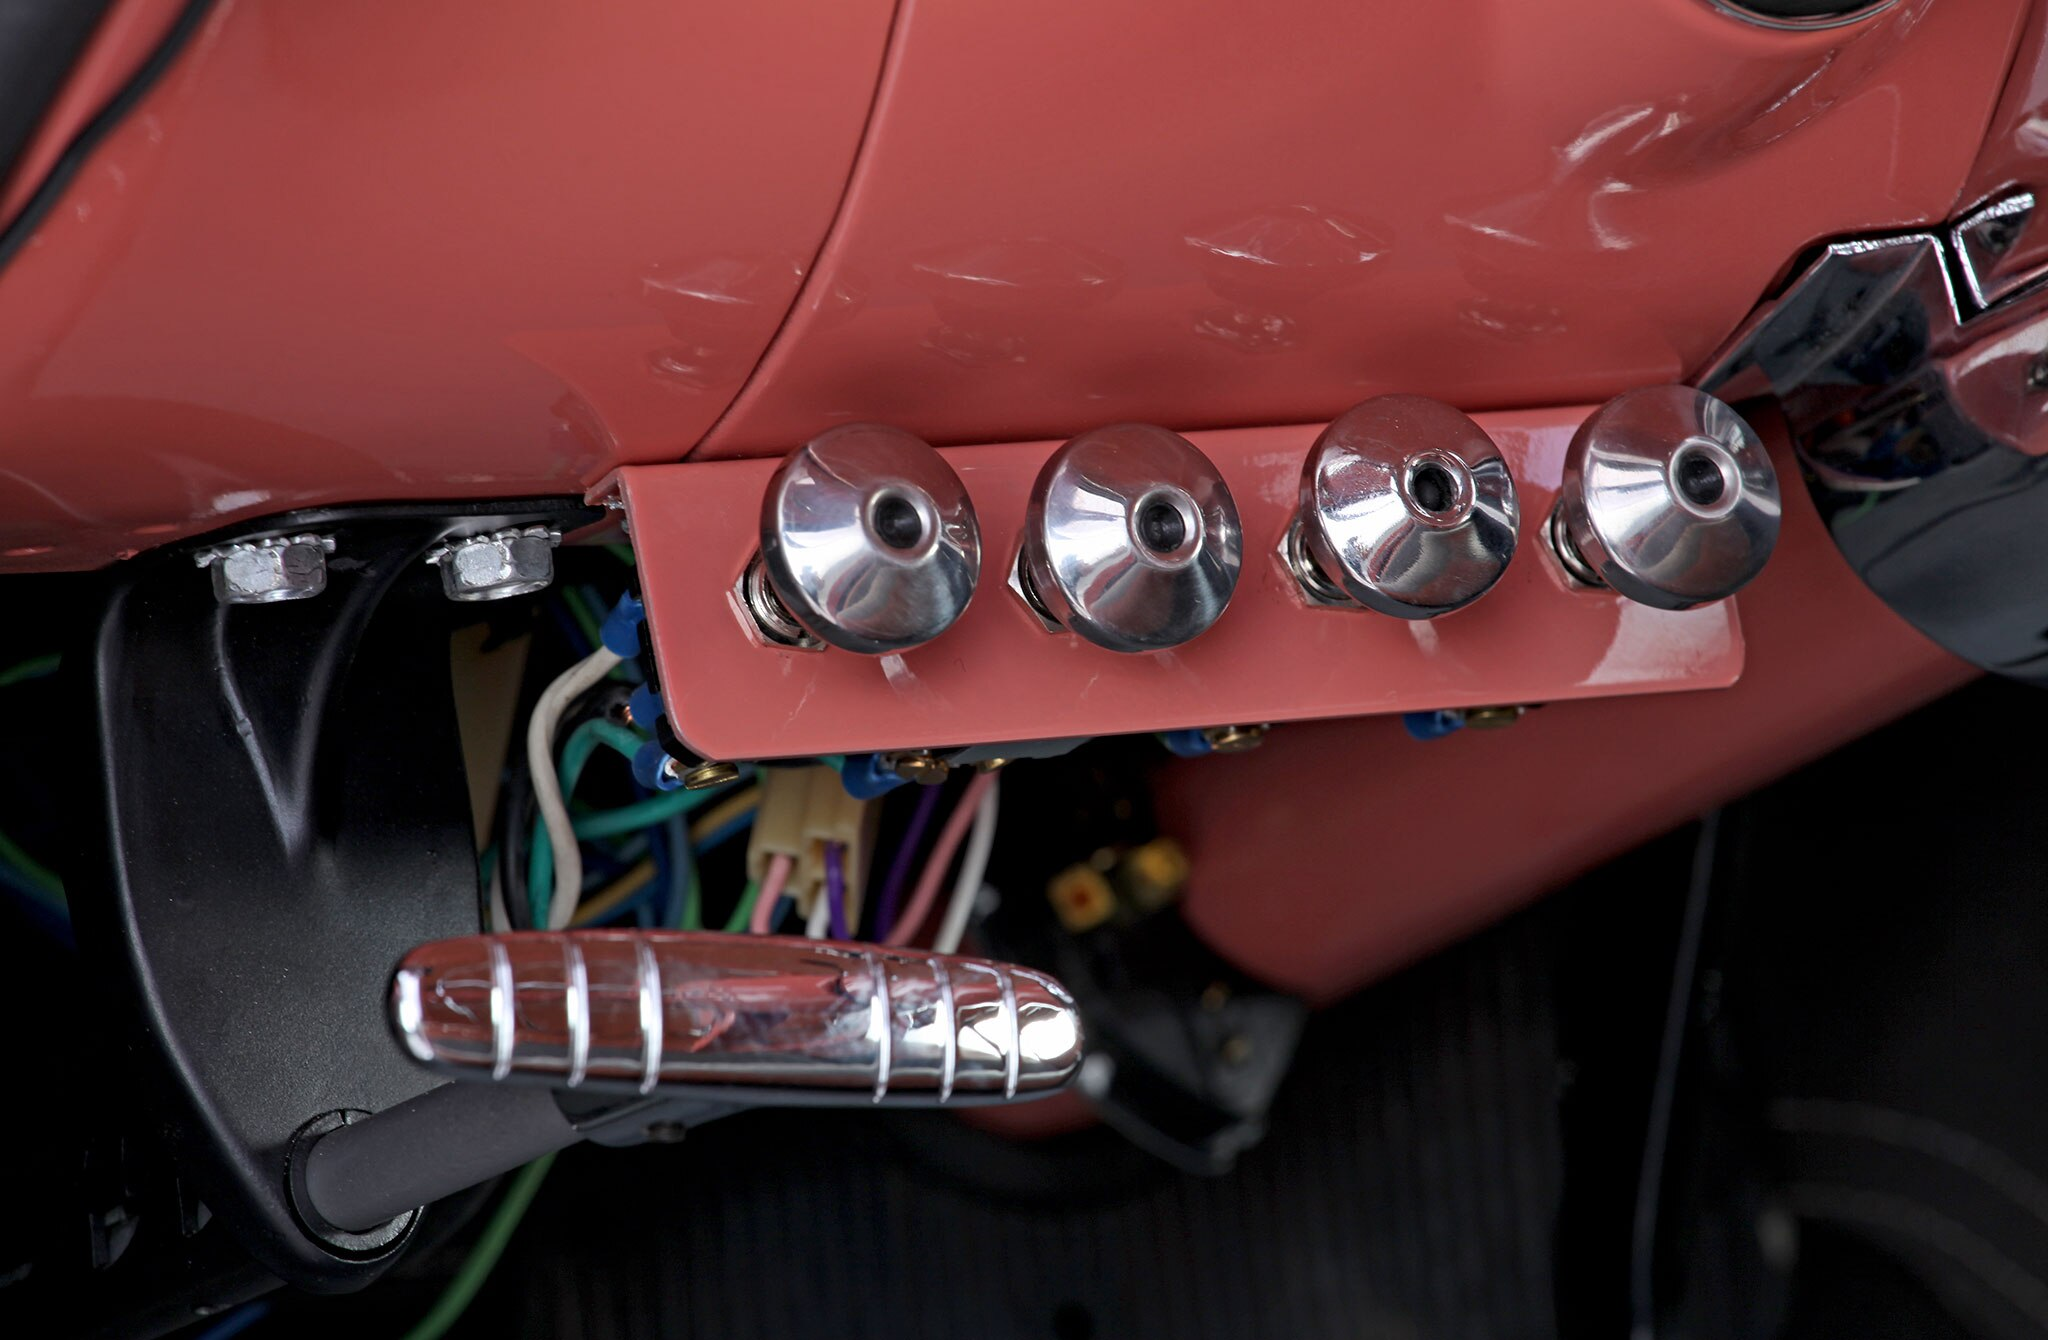 hight resolution of 1957 chevy bel air fuse box location wiring diagram57 chevy fuse box location wiring library1957 bel